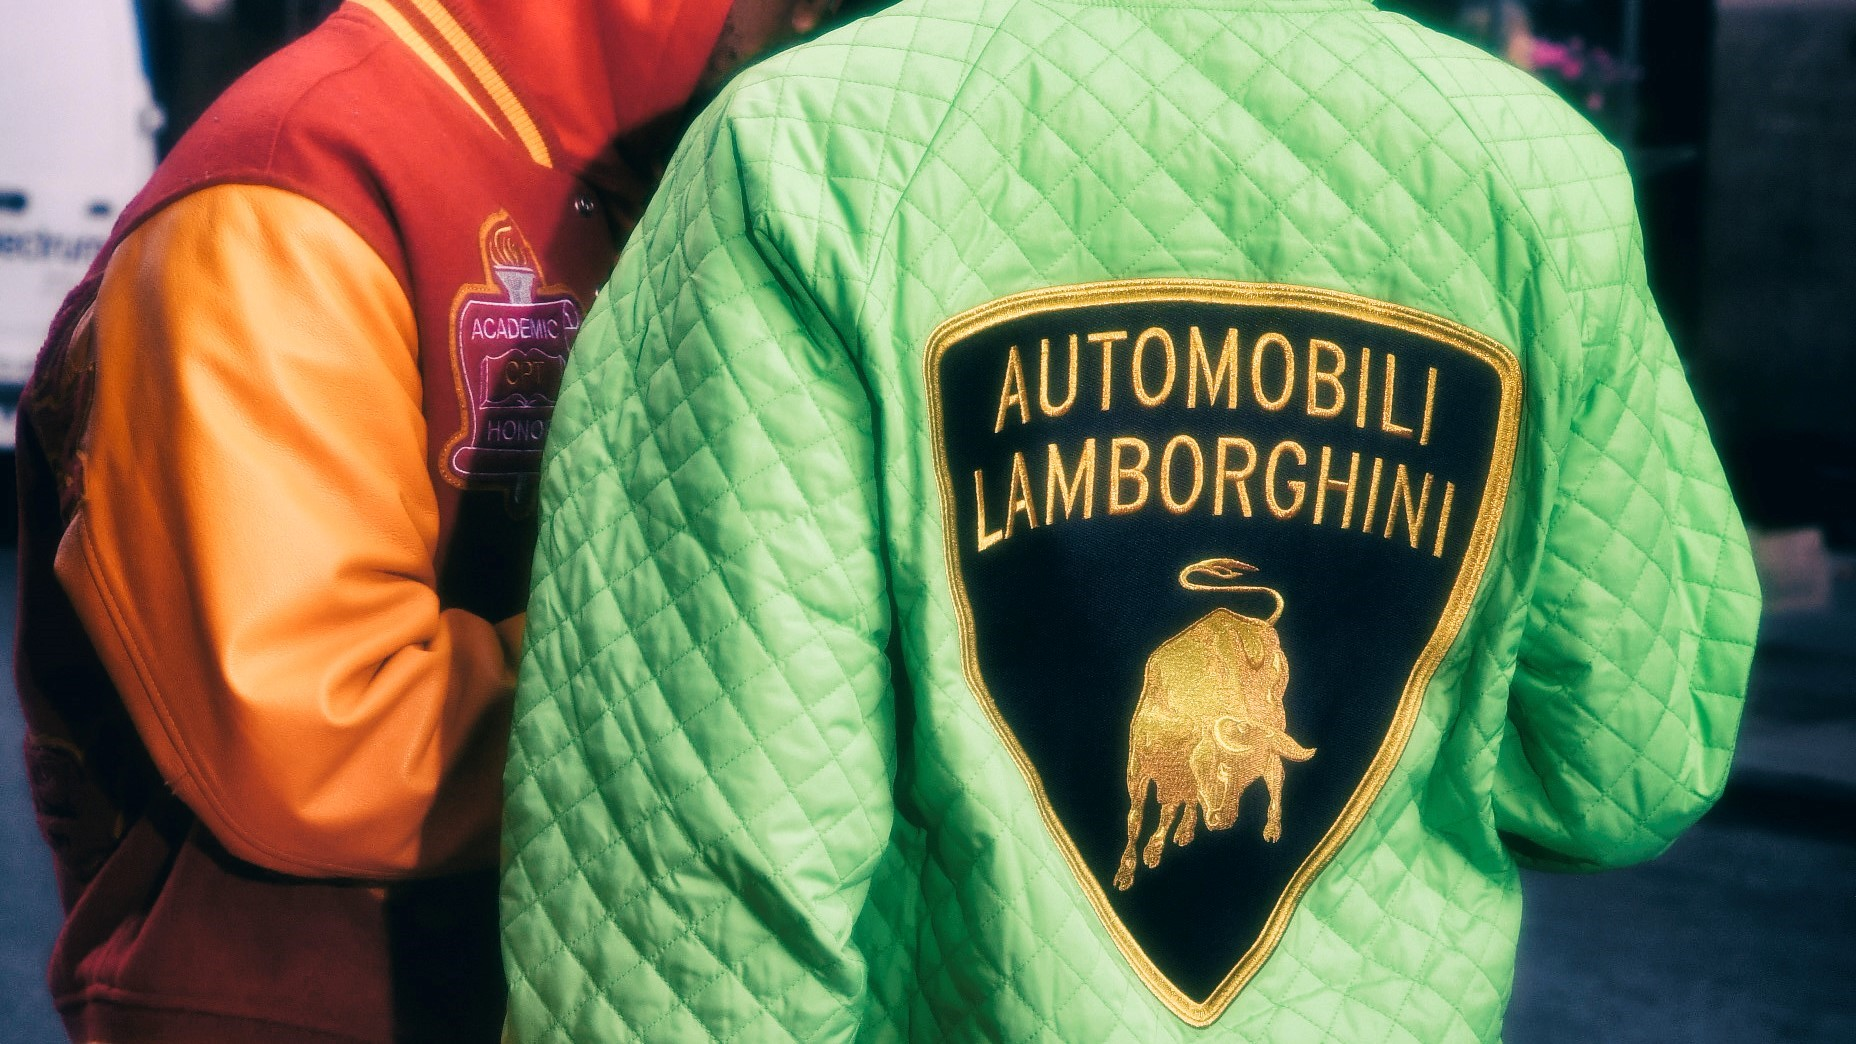 Automobili Lamborghini and Supreme come together on a new collection for Spring-Summer 2020 - Image 5